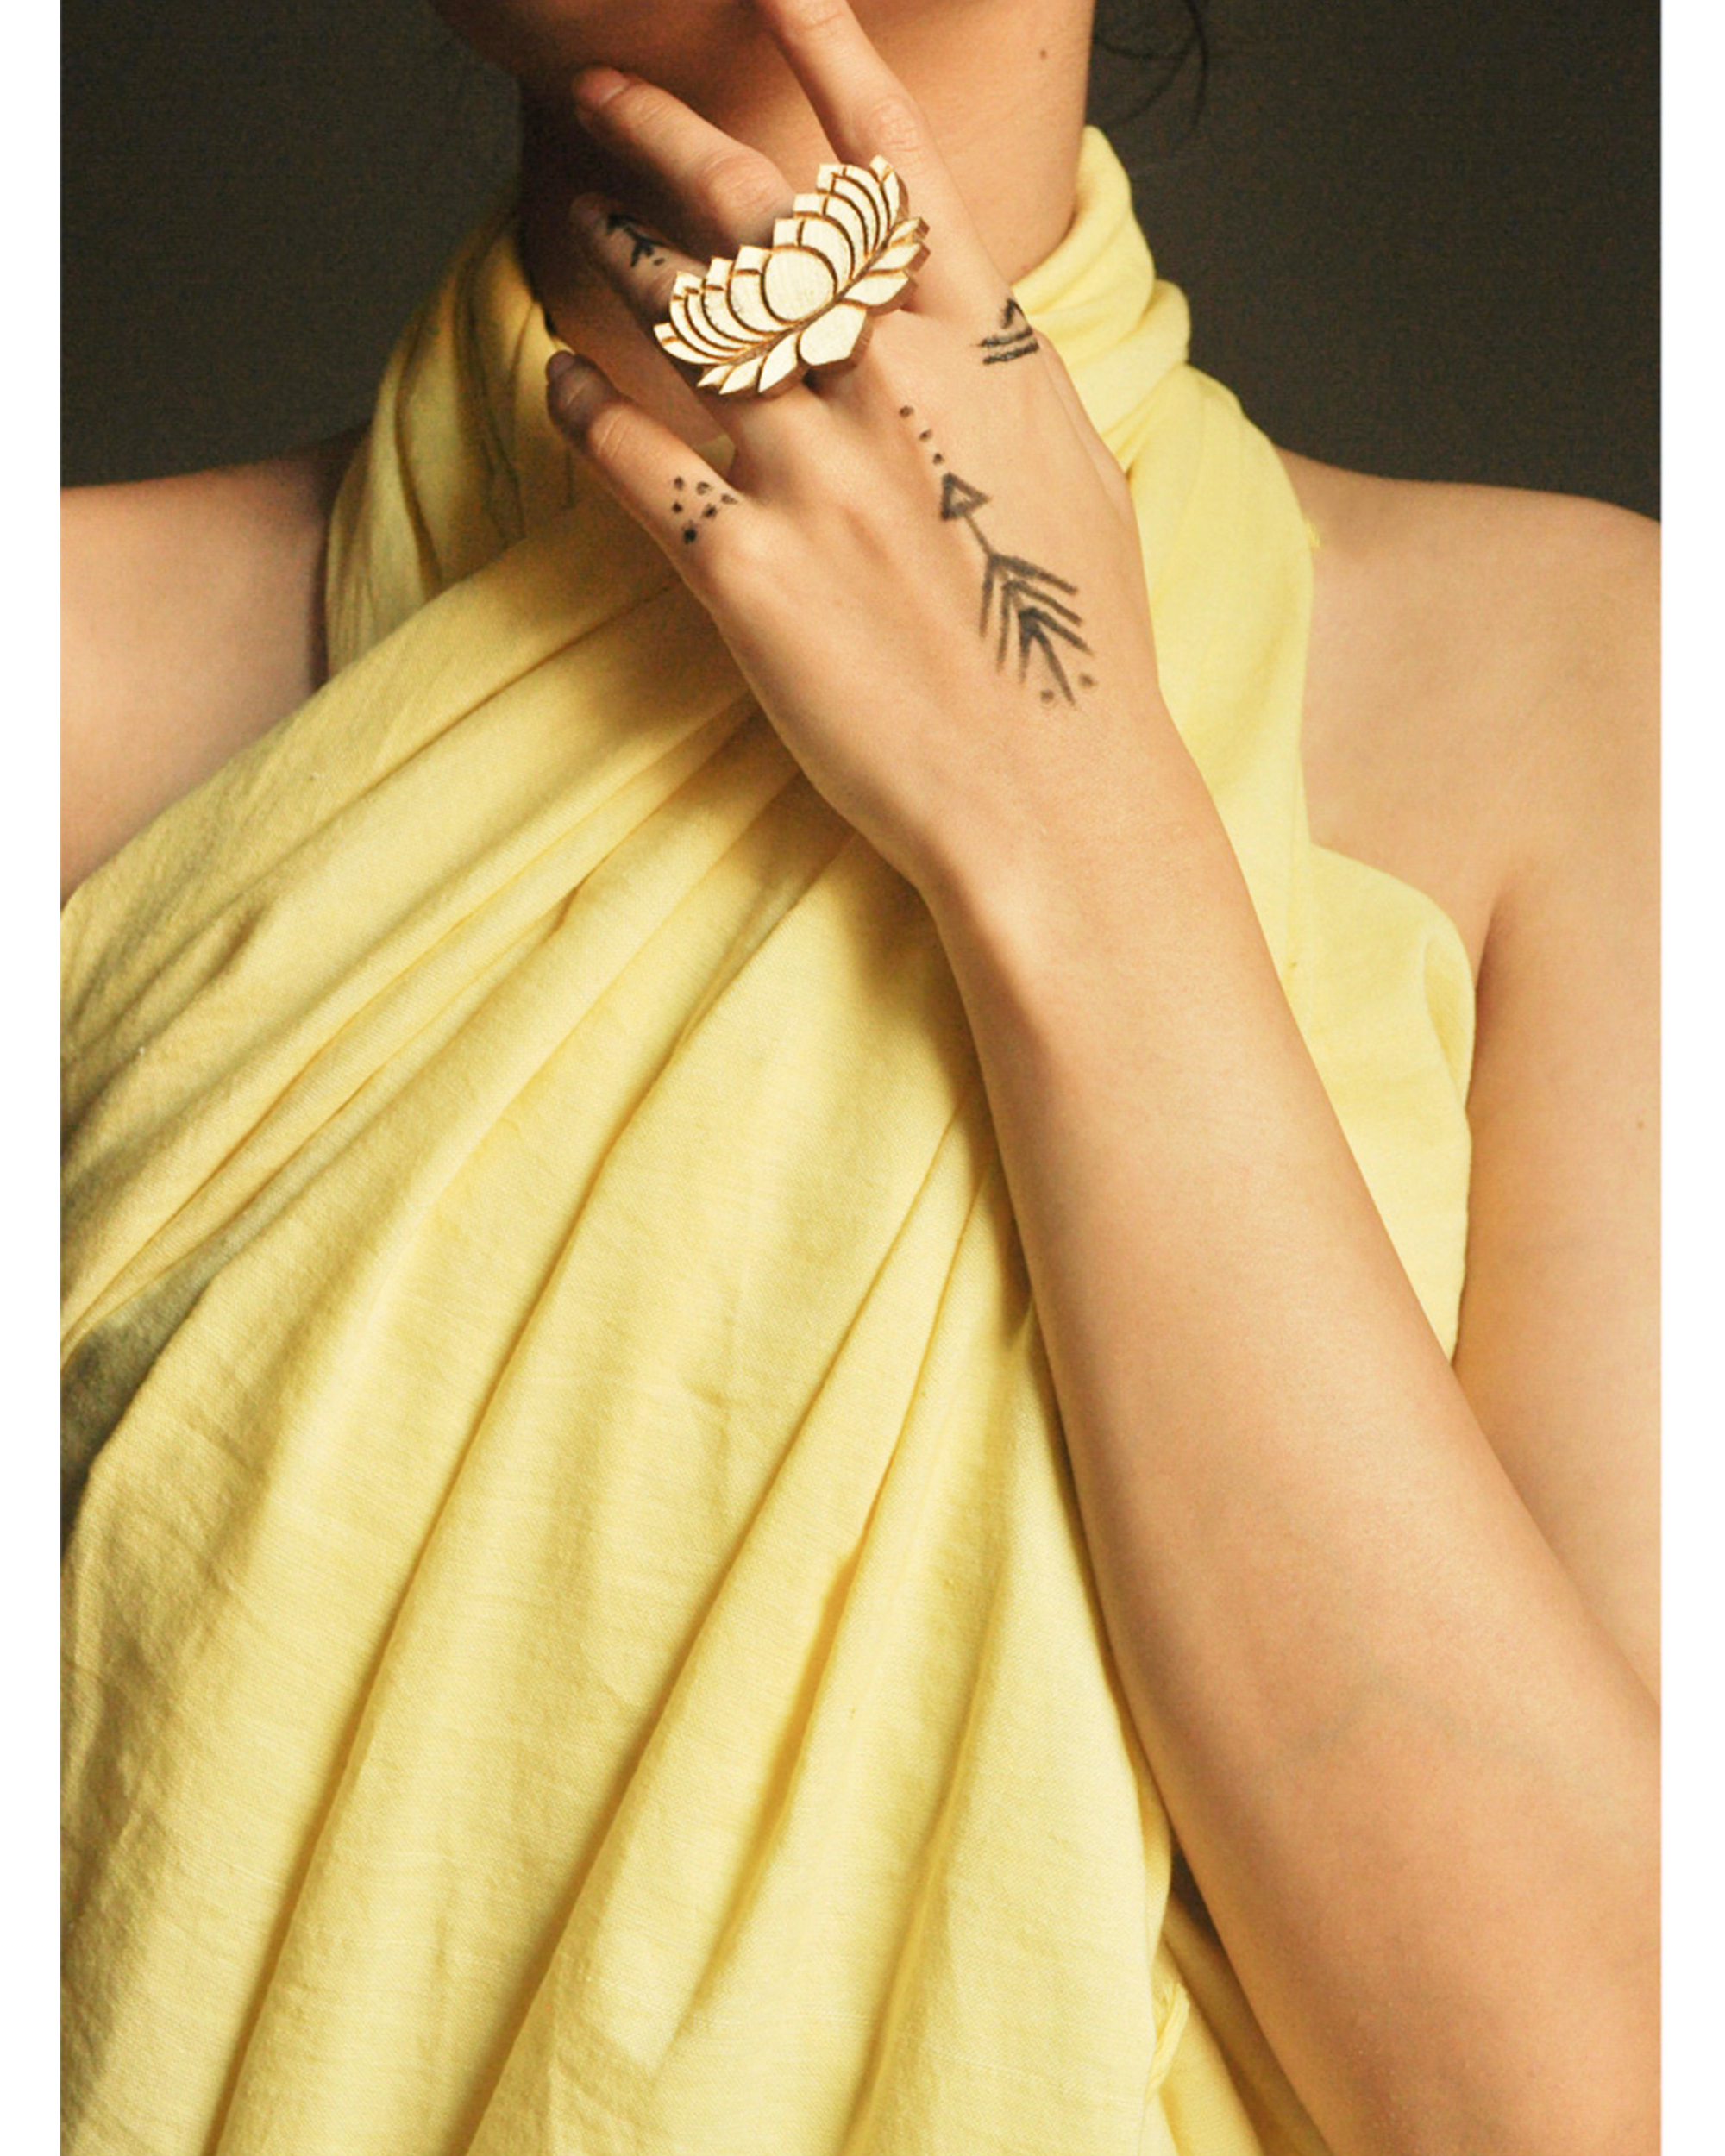 Lotus handcrafted ring